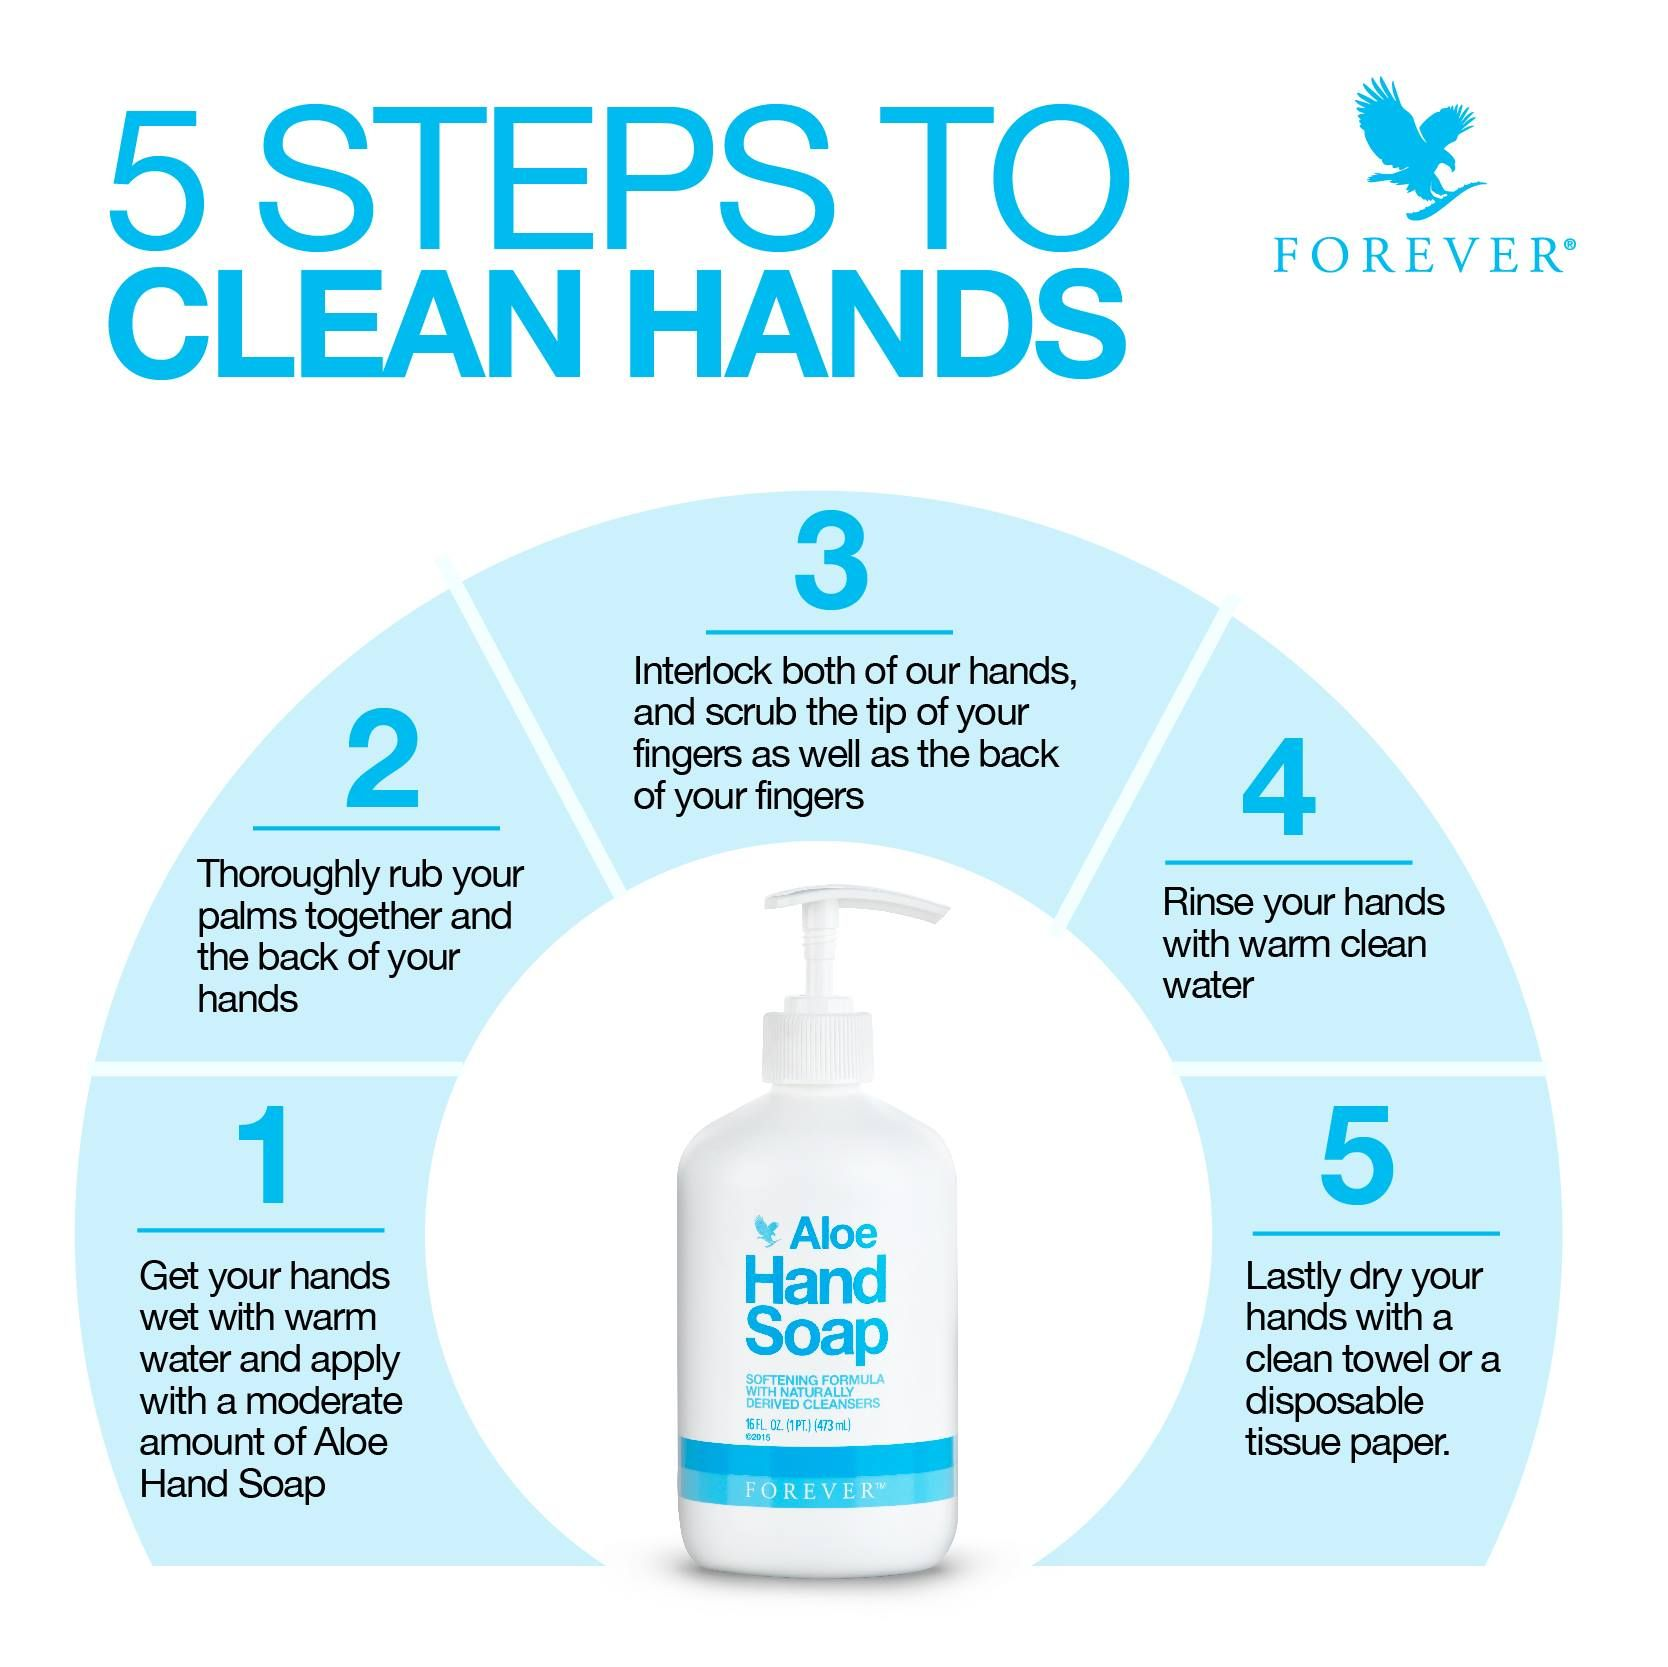 Here Are 5 Steps To Clean Hands Using Aloe Hand Soap Forever